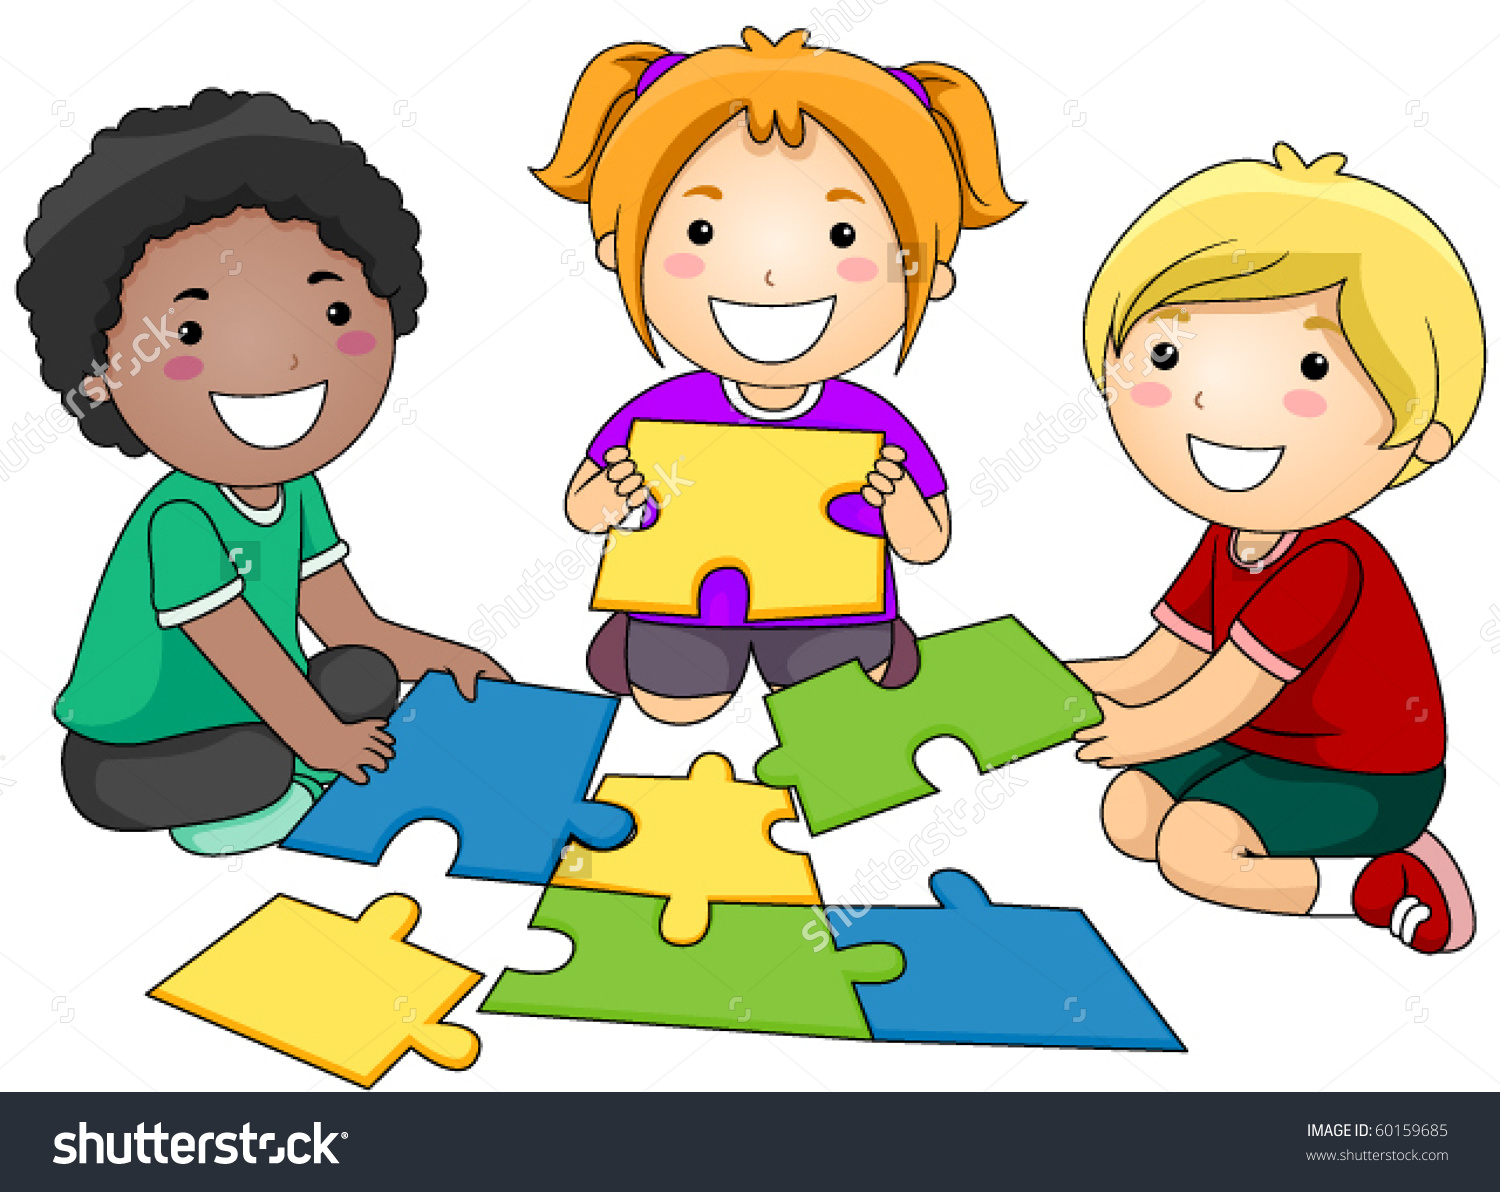 Small Group Of Kids .-Small Group Of Kids .-6